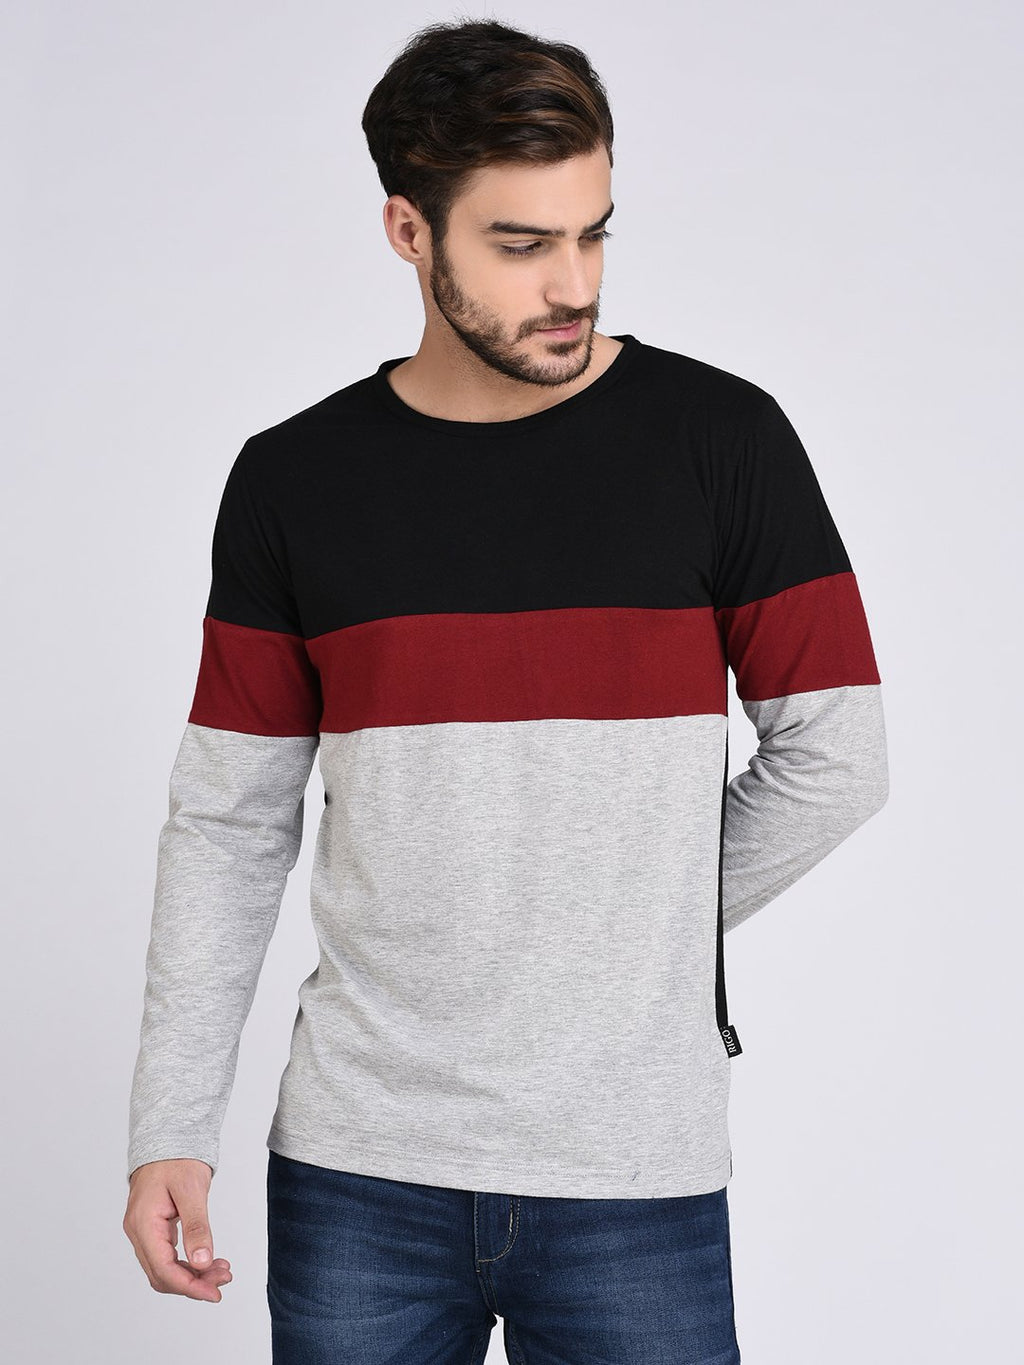 Rigo Black Maroon Grey Colorblock Tshirt-Full